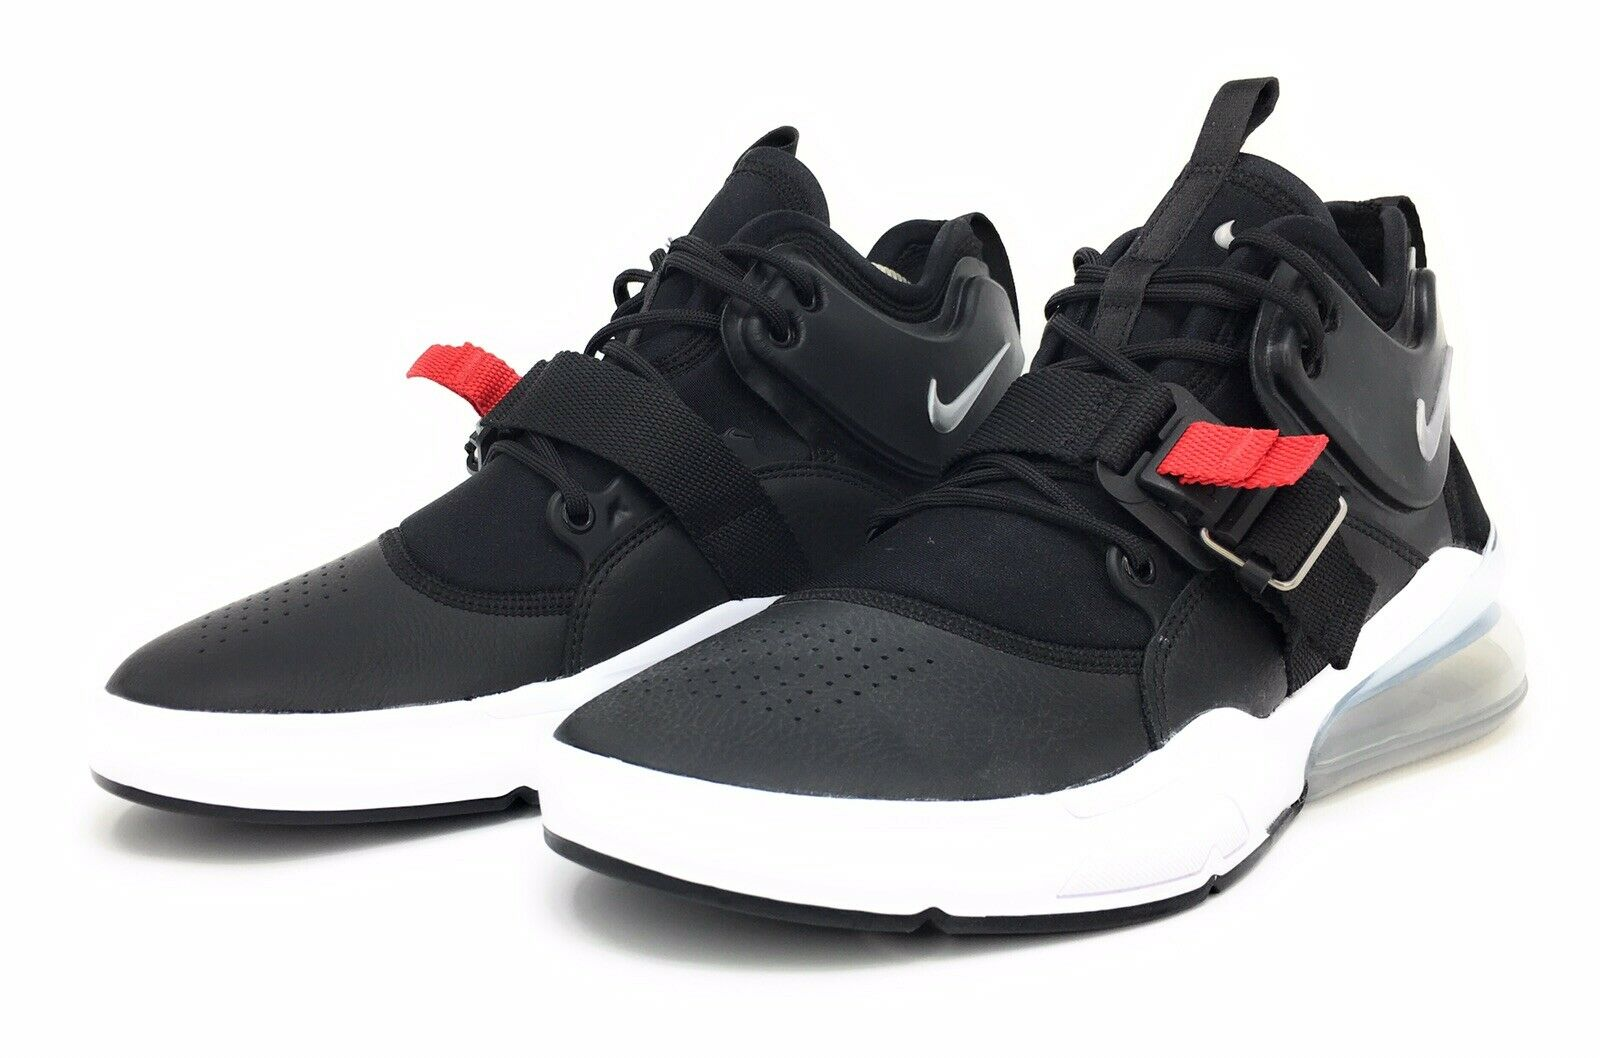 Nike Air Force 270 Men's Training shoes Black White AH6772-001 Size 9.5